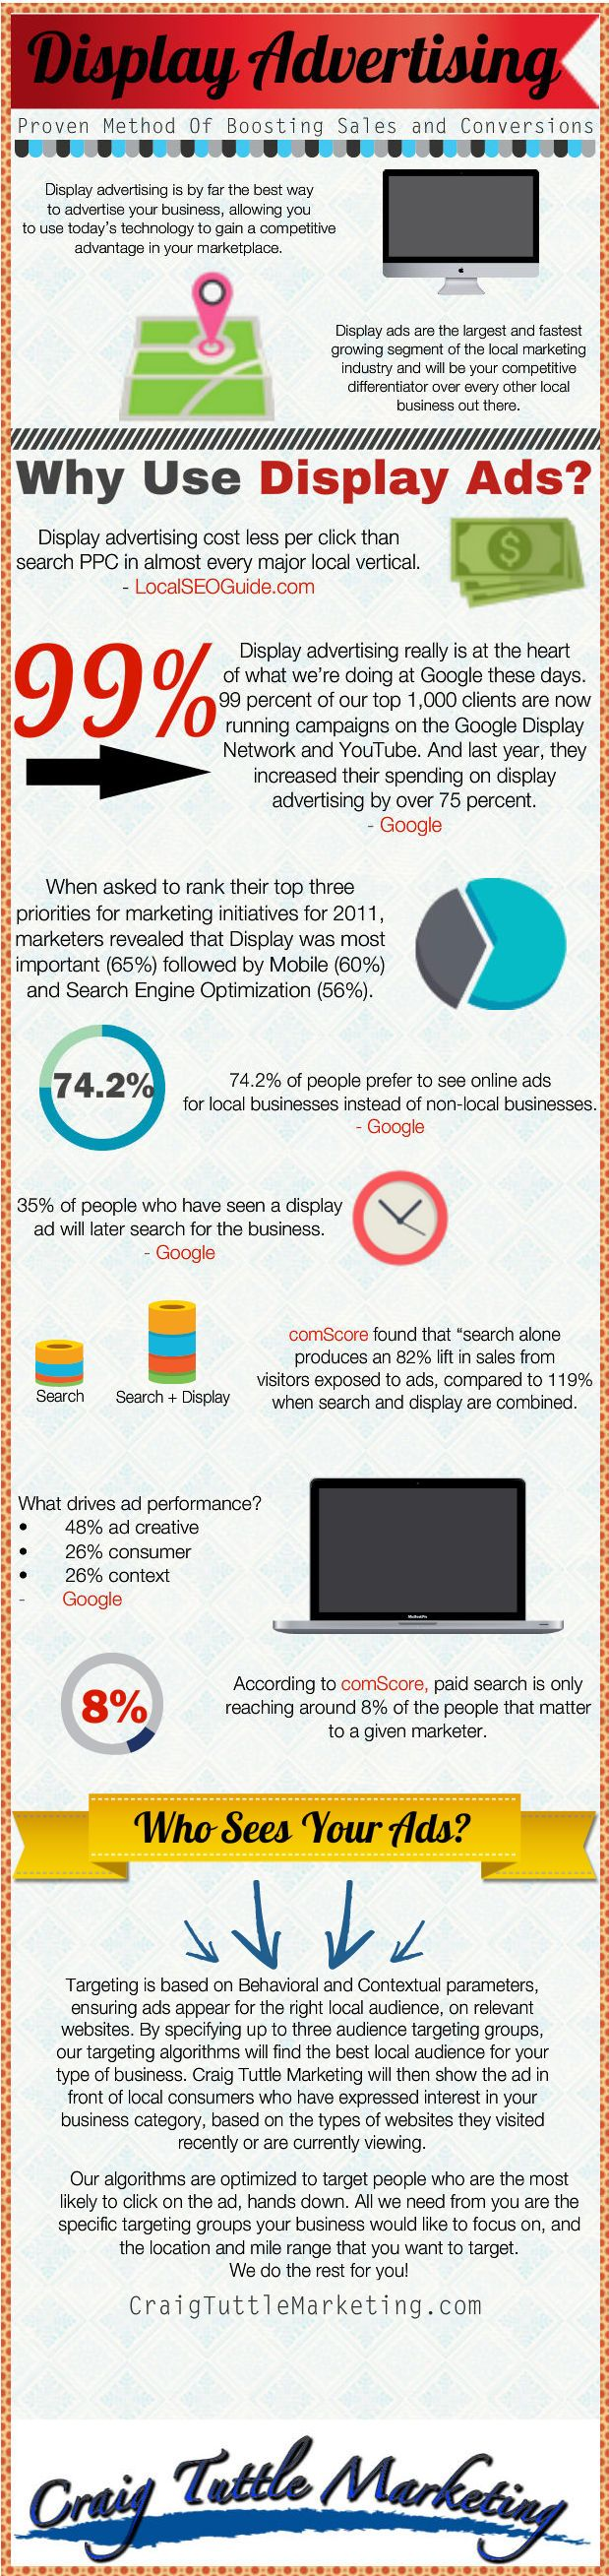 Internet Display Advertising Solutions | Rochester NY